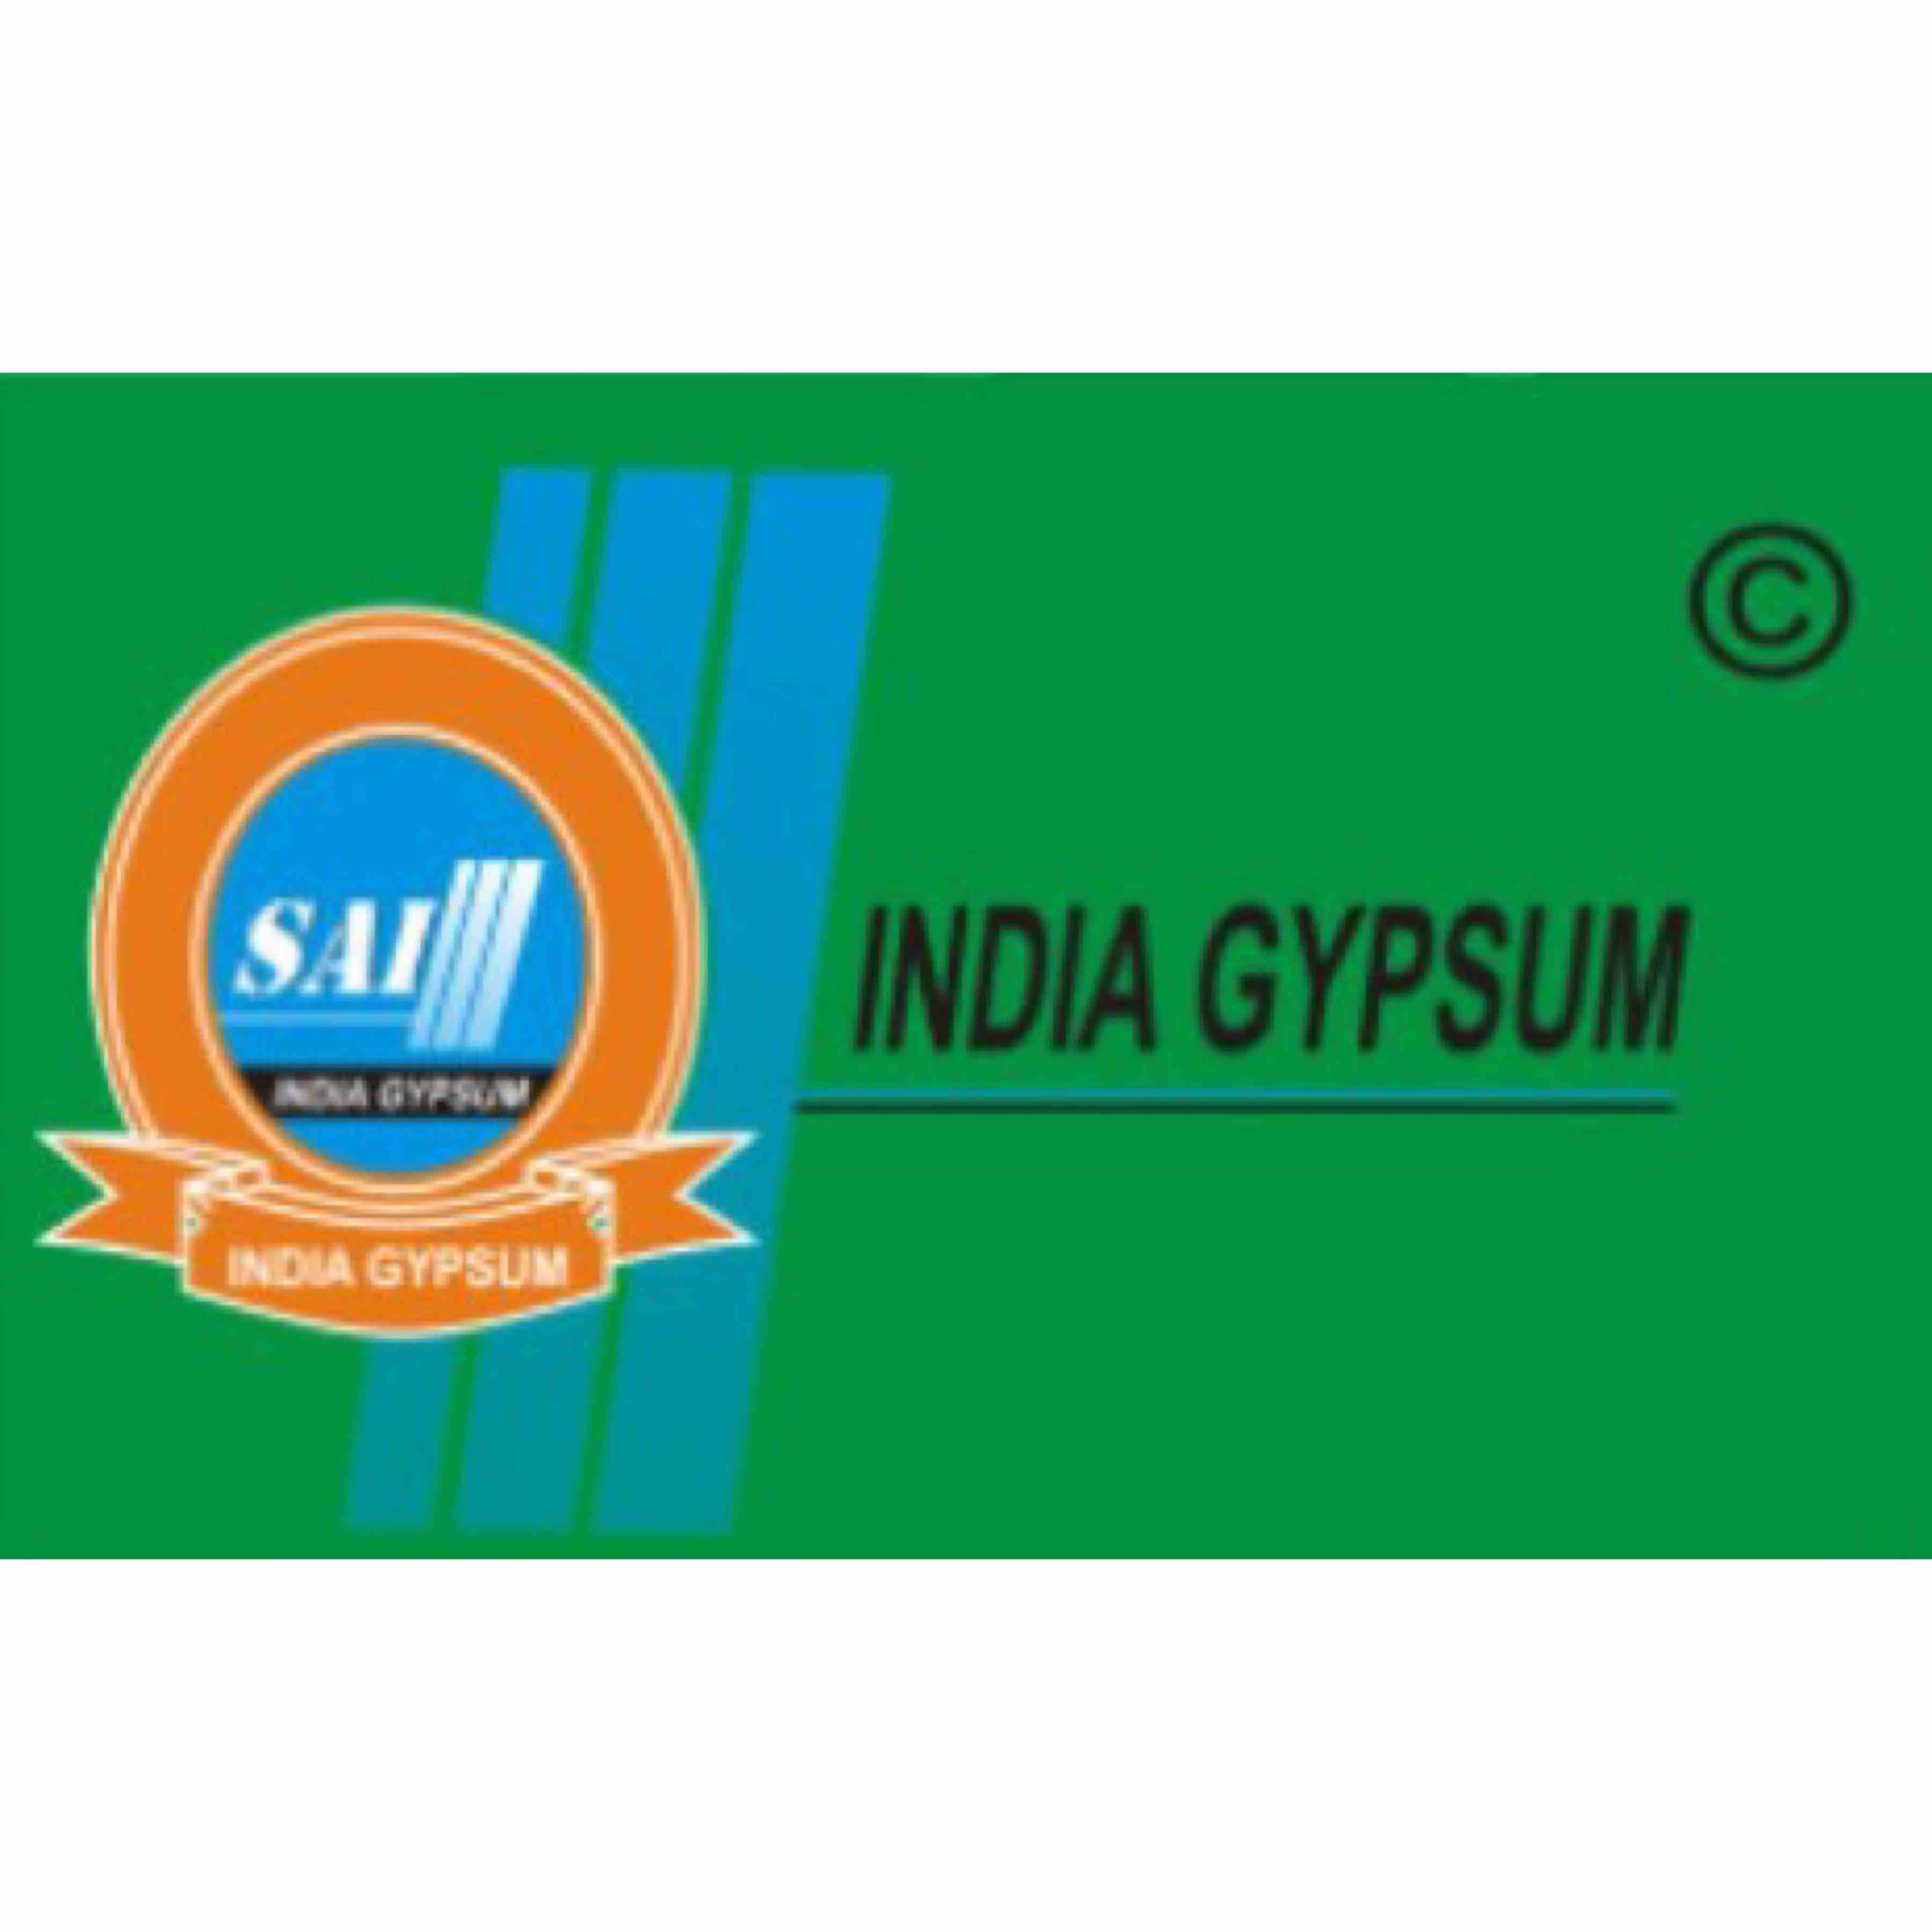 SAI INDIA GYPSUM PRODUCT PRIVATE LIMITED